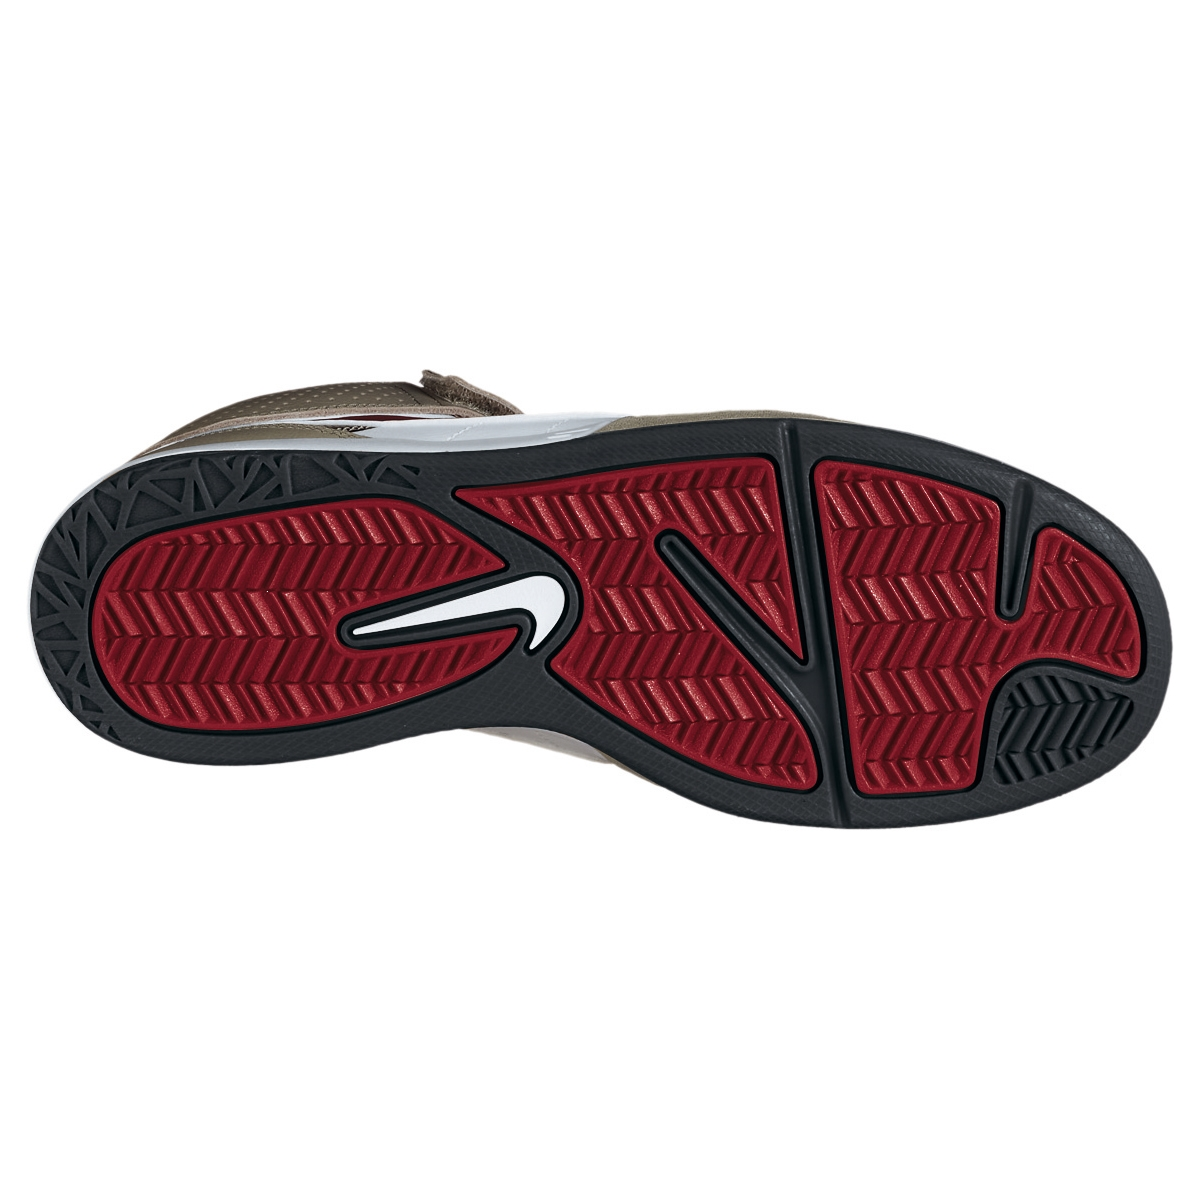 Looking for Nike shoes (for flatland and freestyle